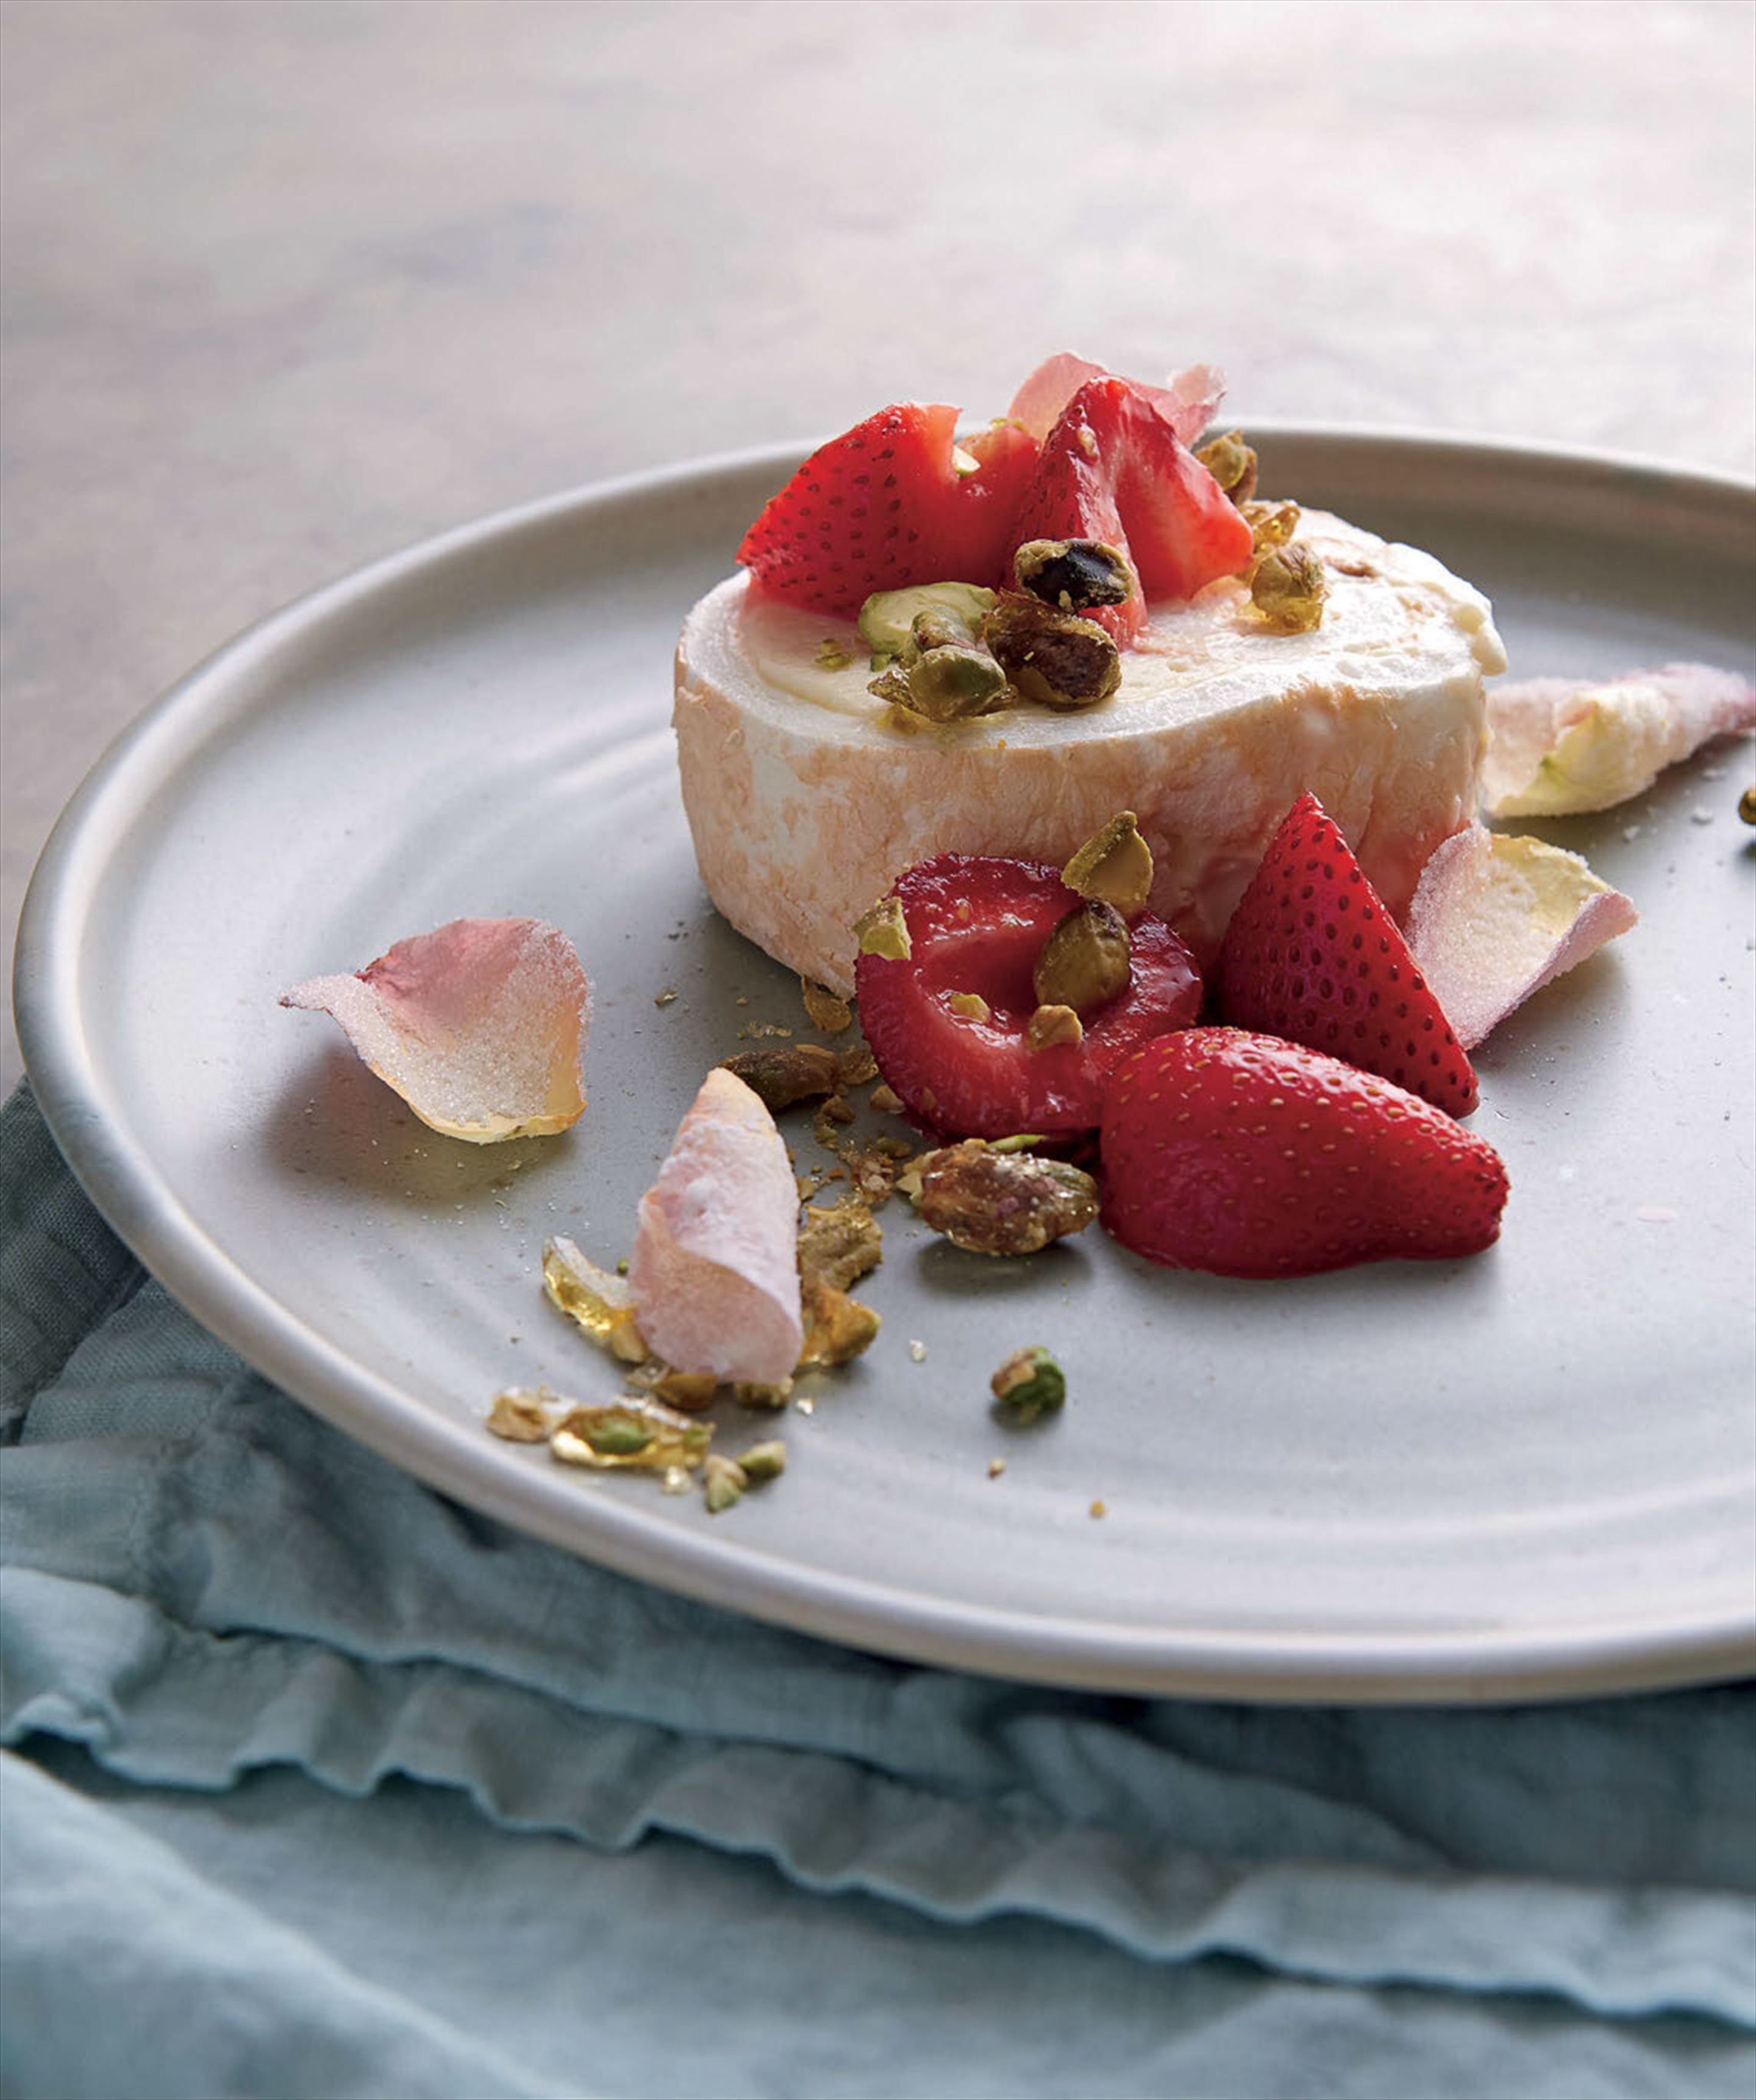 Cath's strawberry and rose rolled pavlova